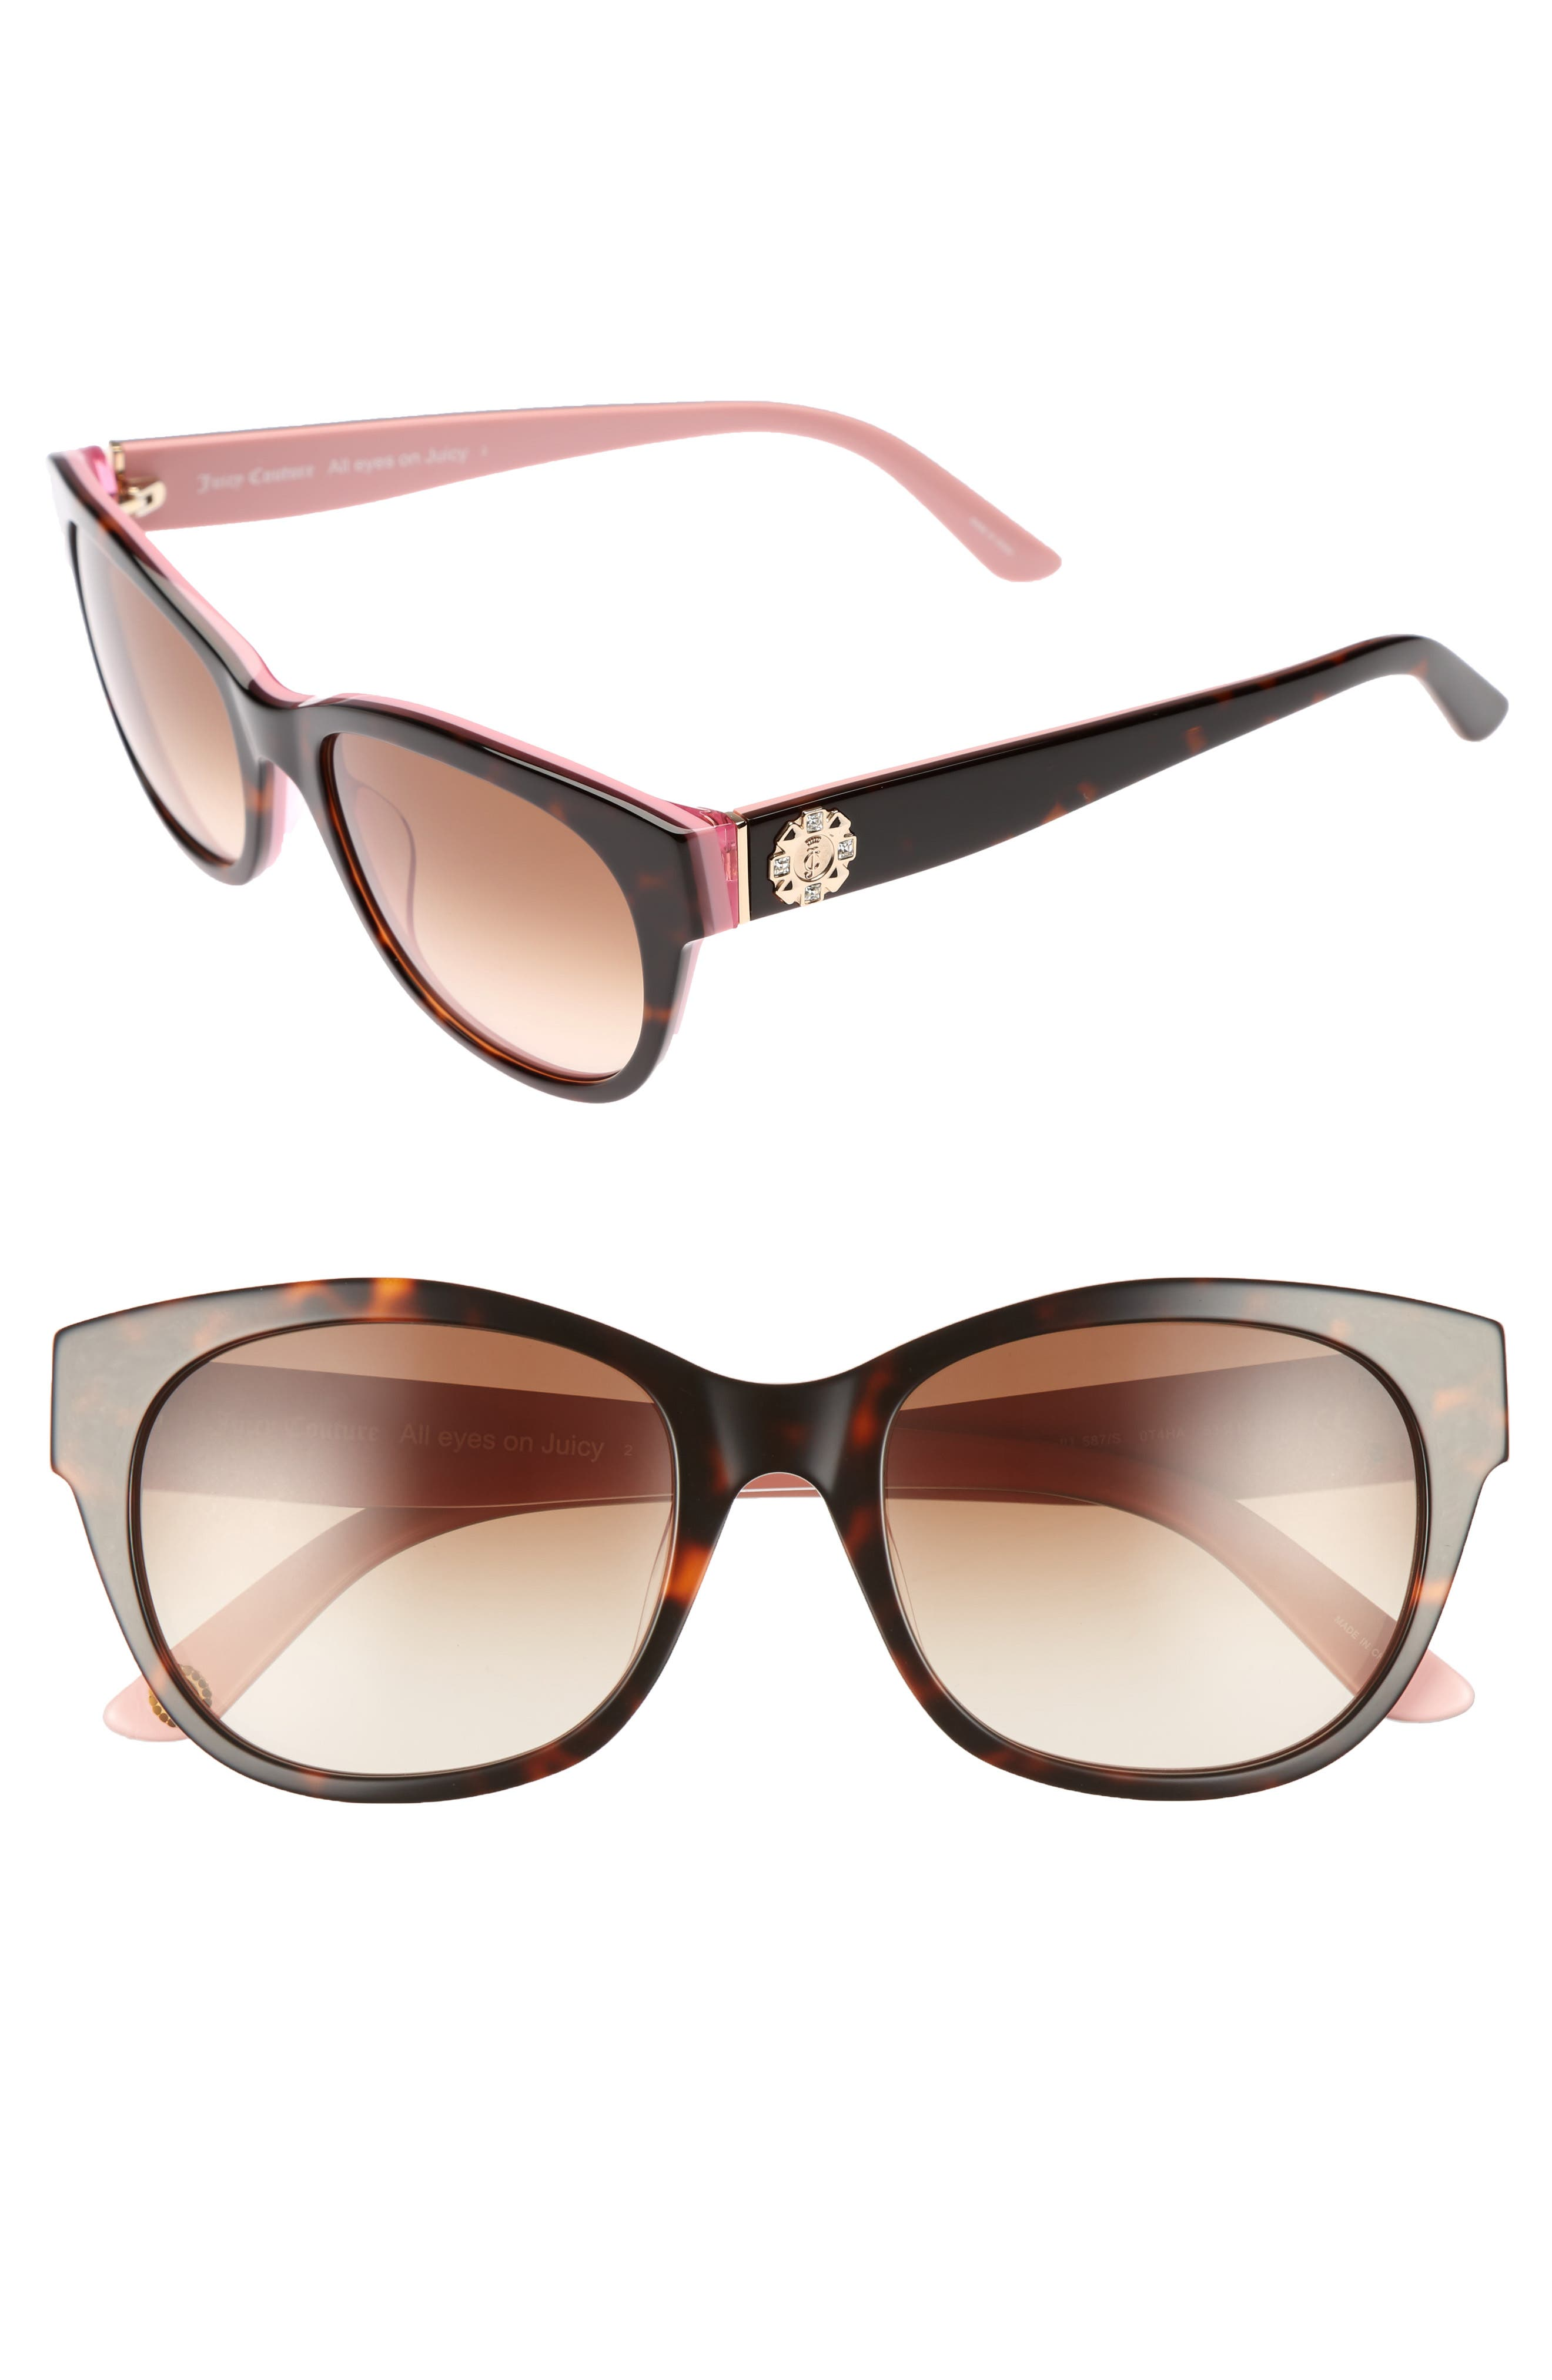 Shades of Couture by Juicy Couture 53mm Gradient Sunglasses